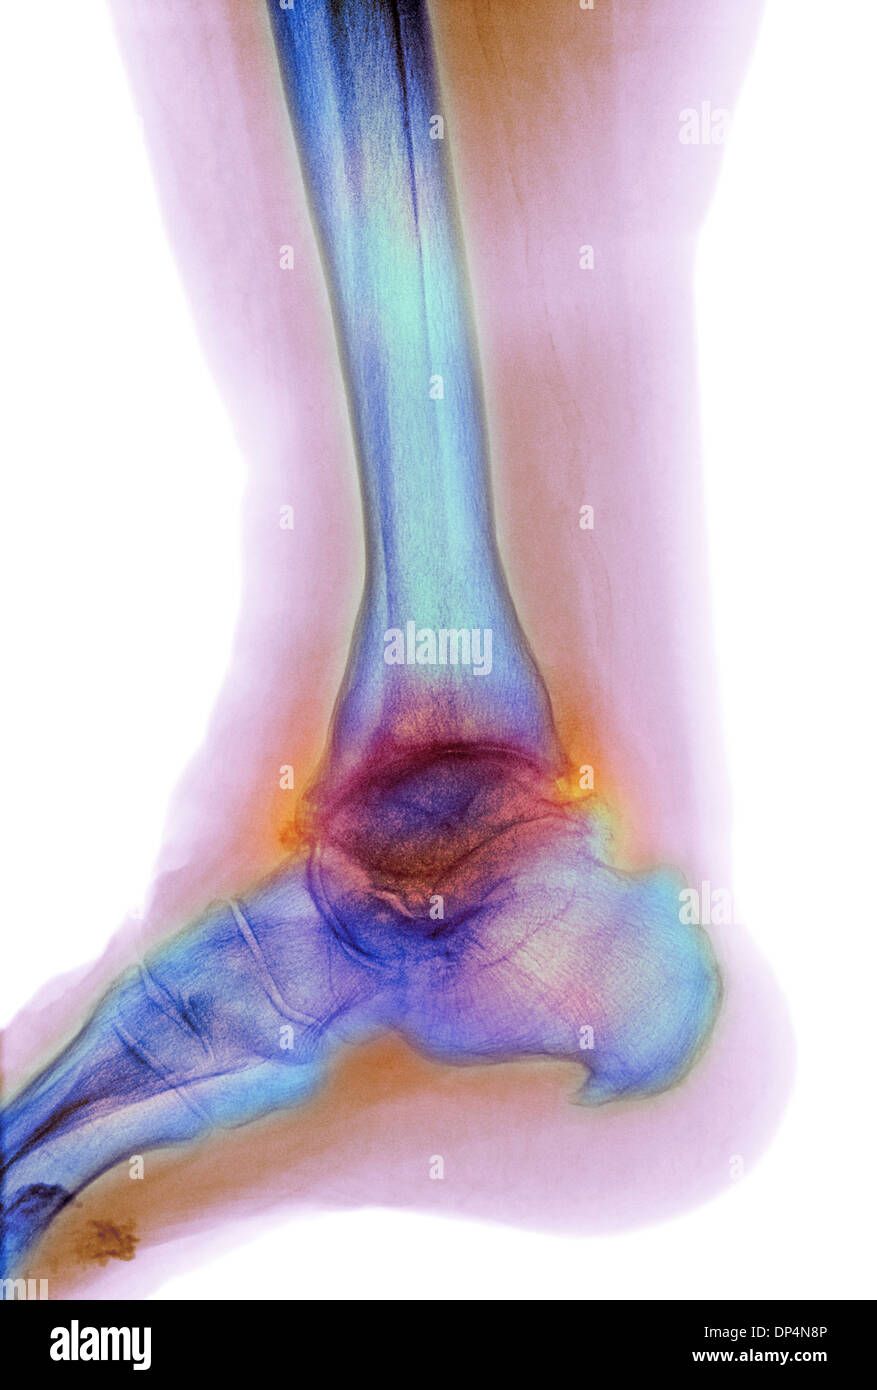 Osteoarthritis of the ankle, X-ray - Stock Image